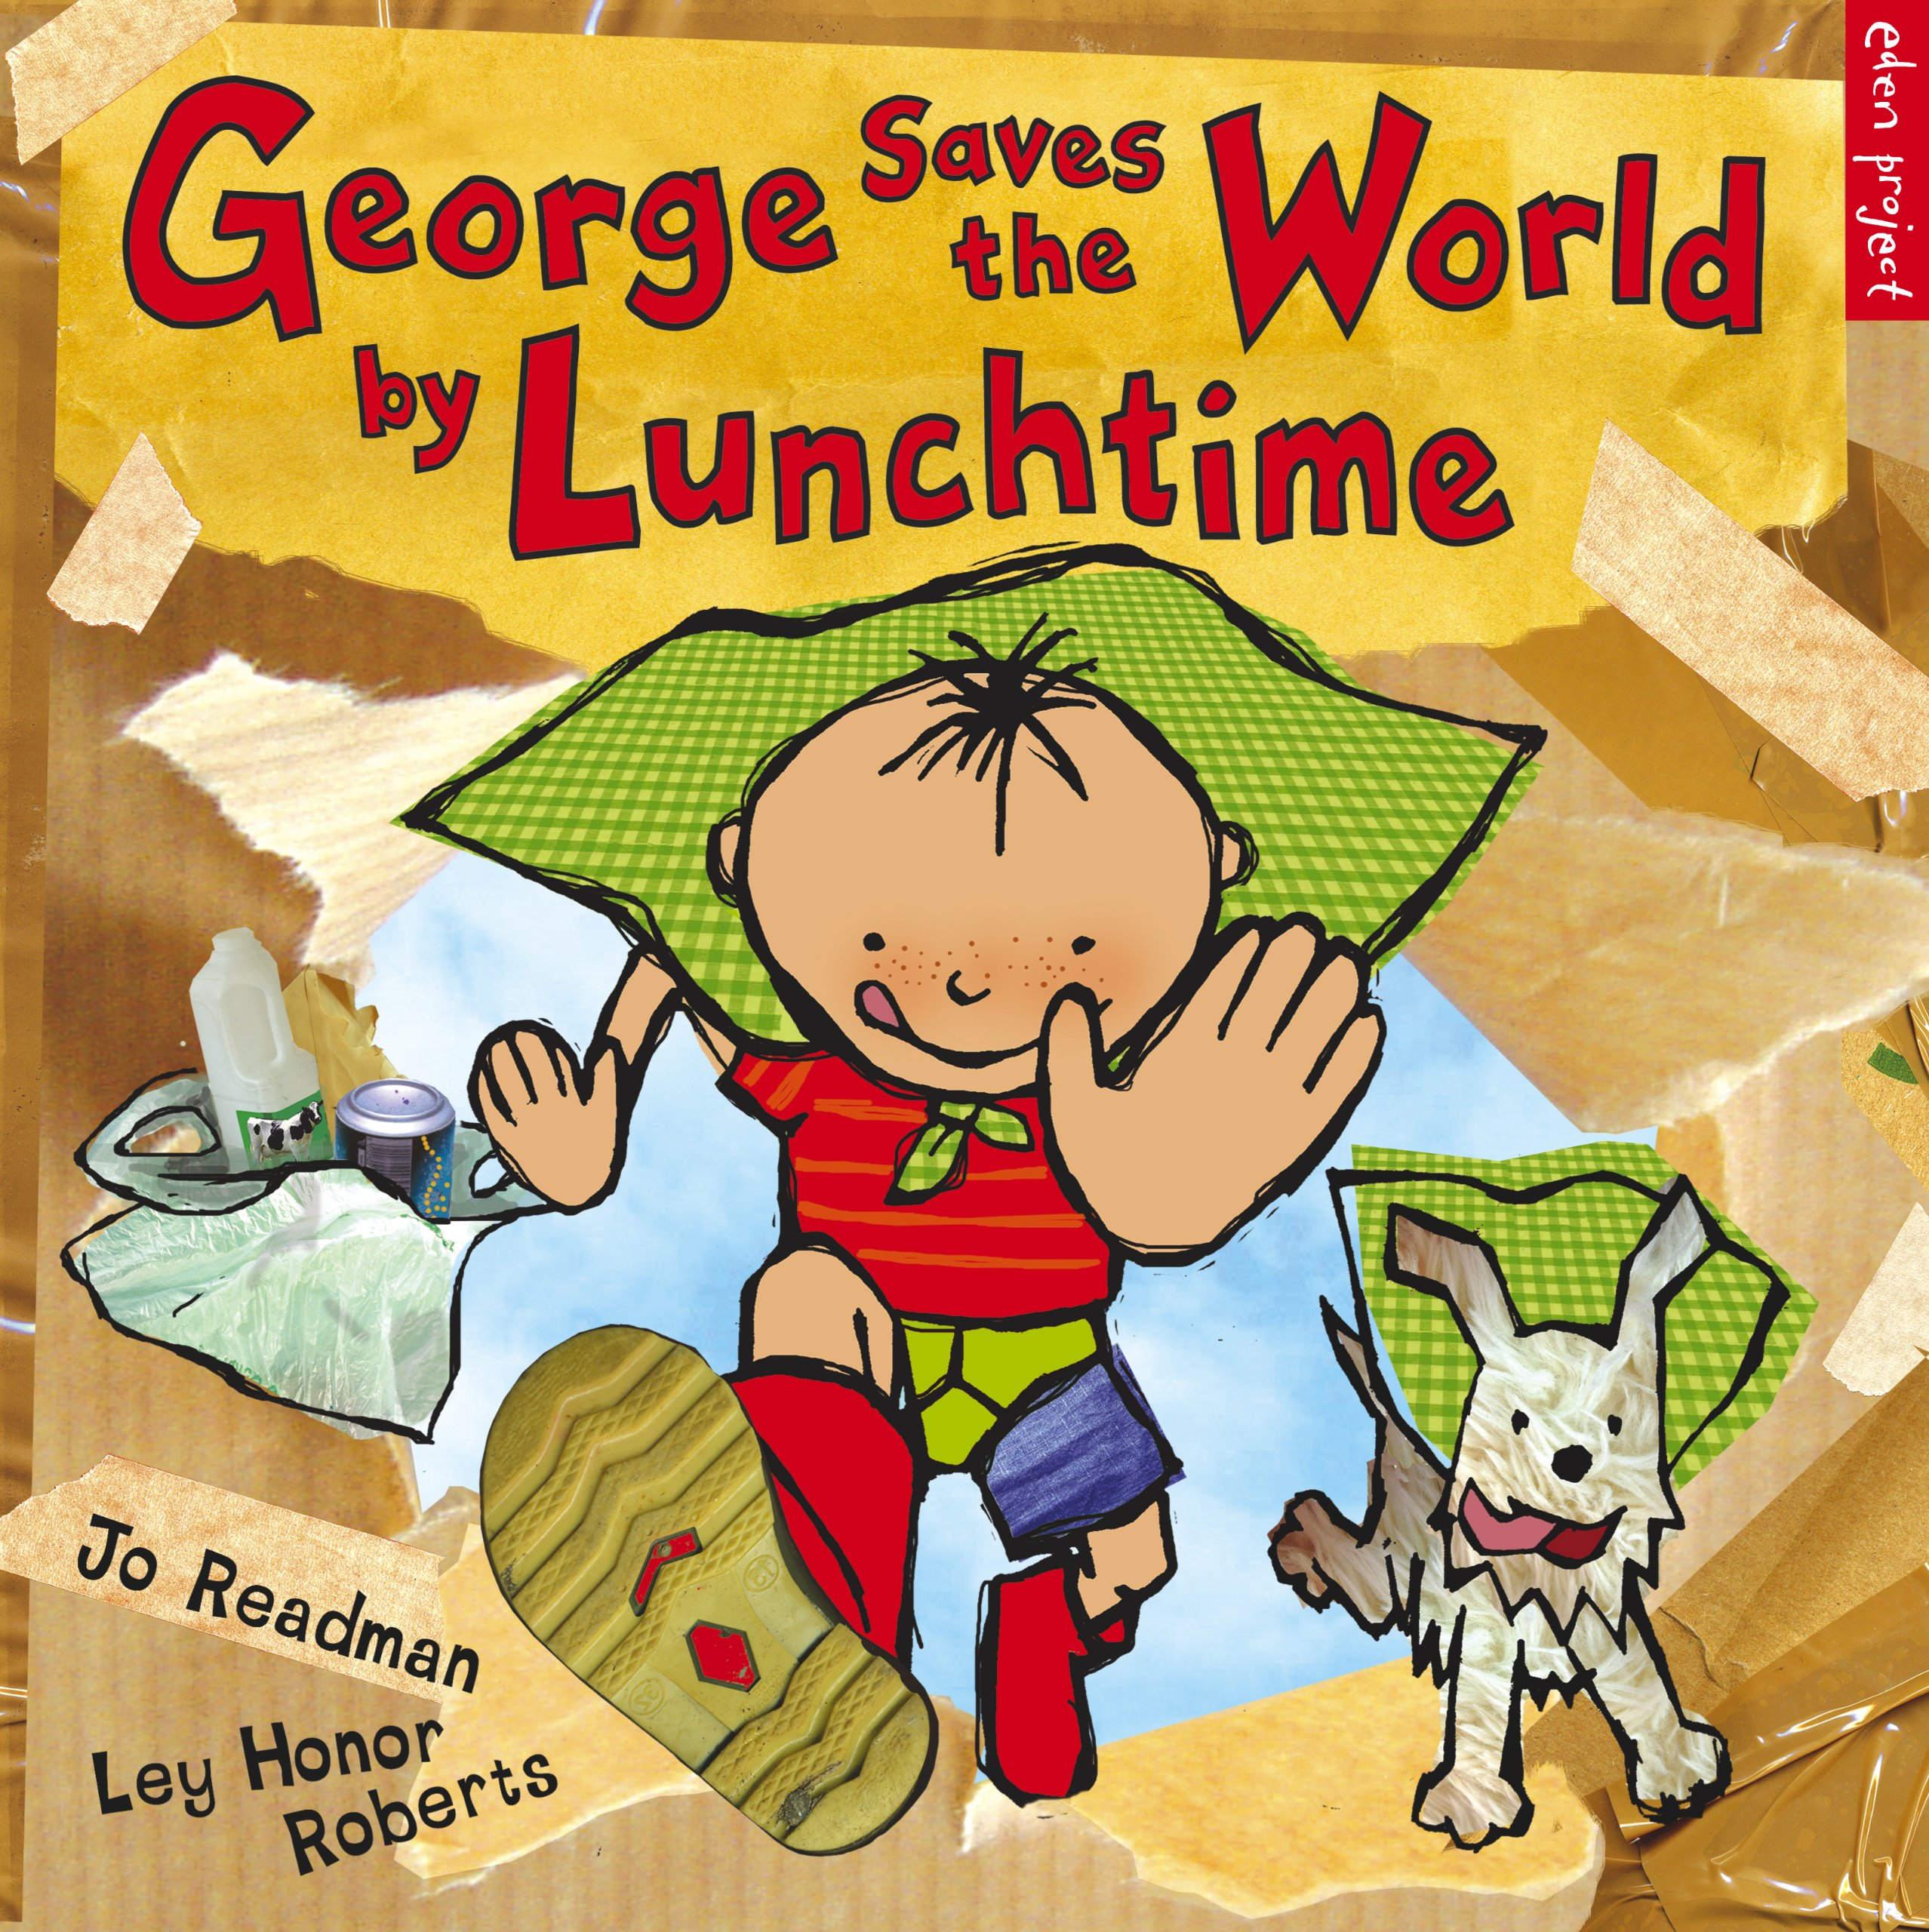 Amazon.com: George Saves the World by Lunchtime (Eden Project Books)  (9781903919507): Readman, Jo, Roberts, Ley Honor: Books